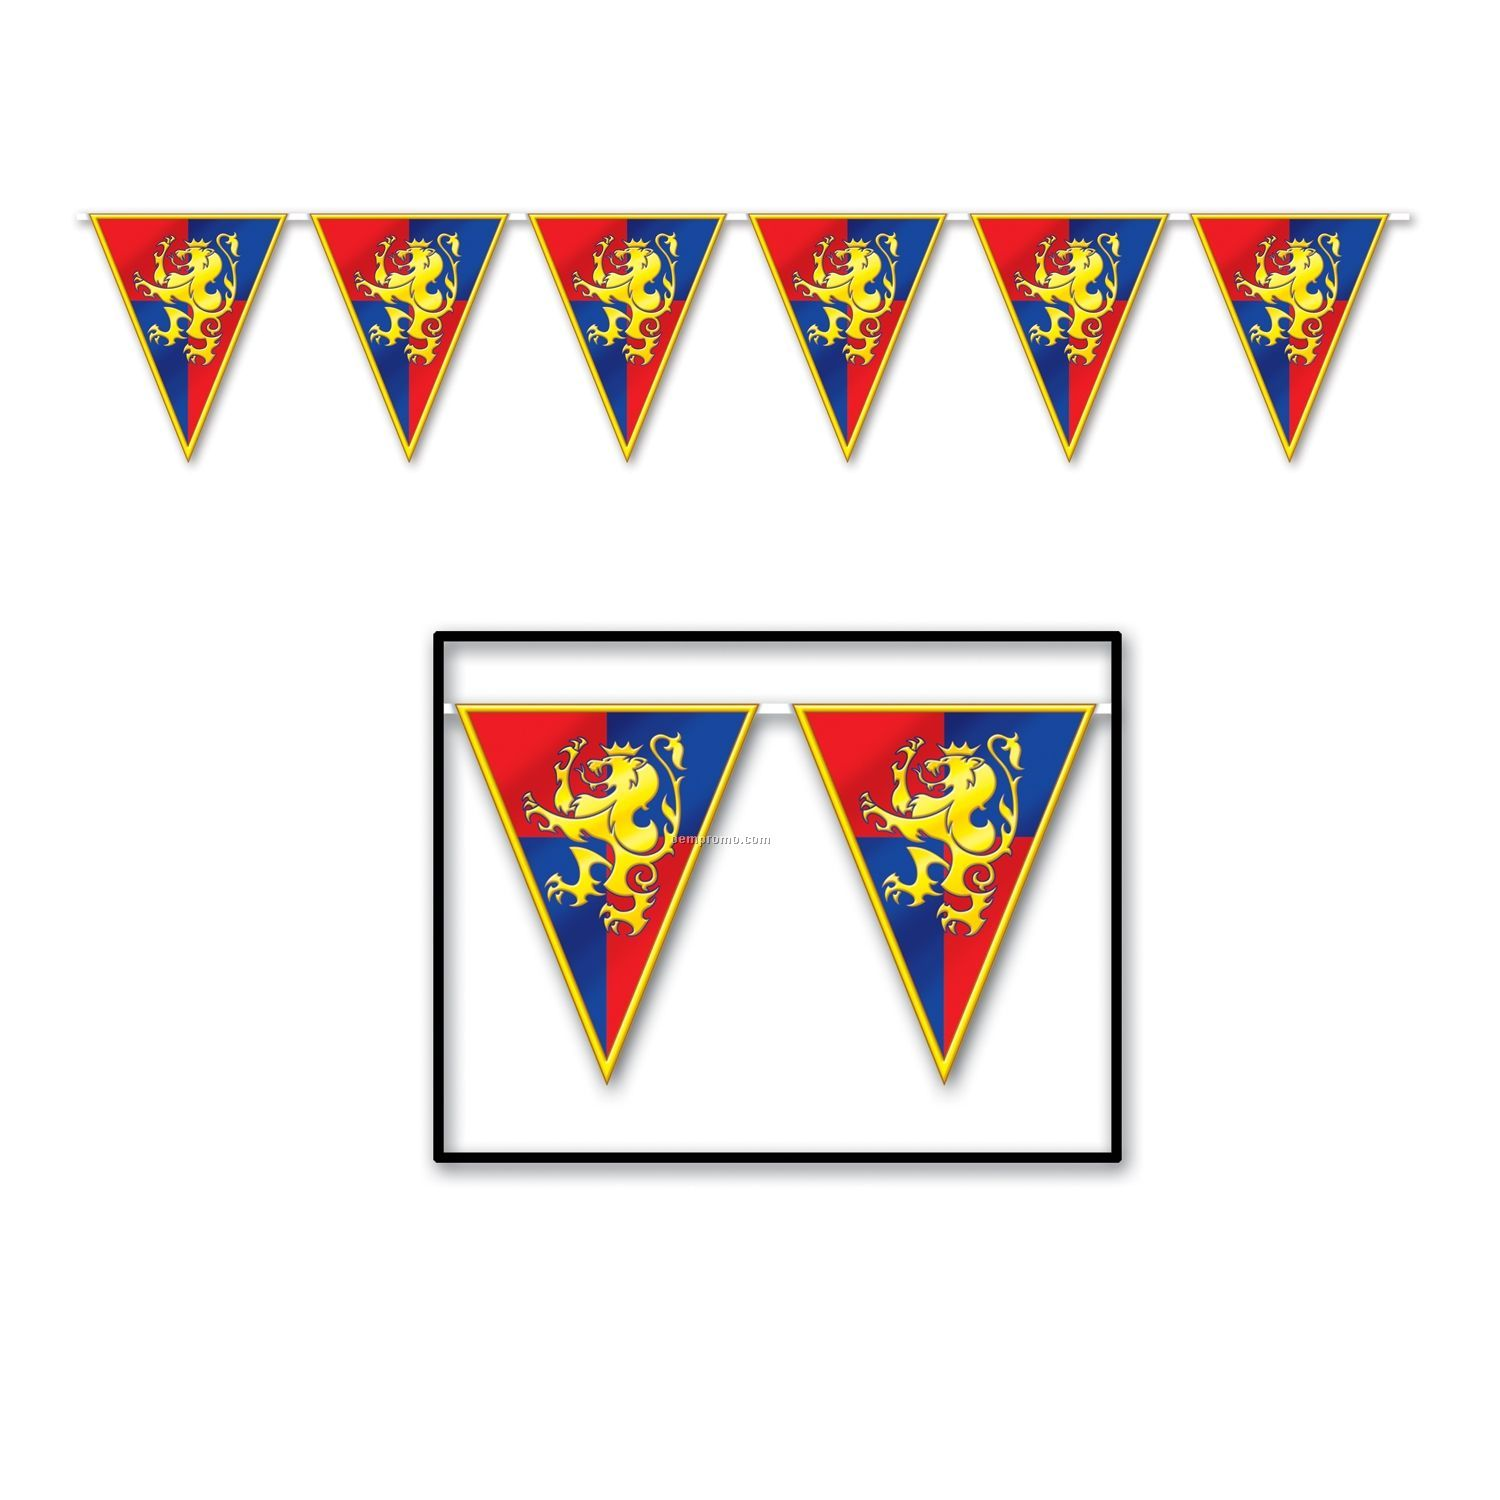 Medieval Pennant Banner,China Wholesale Medieval Pennant Banner